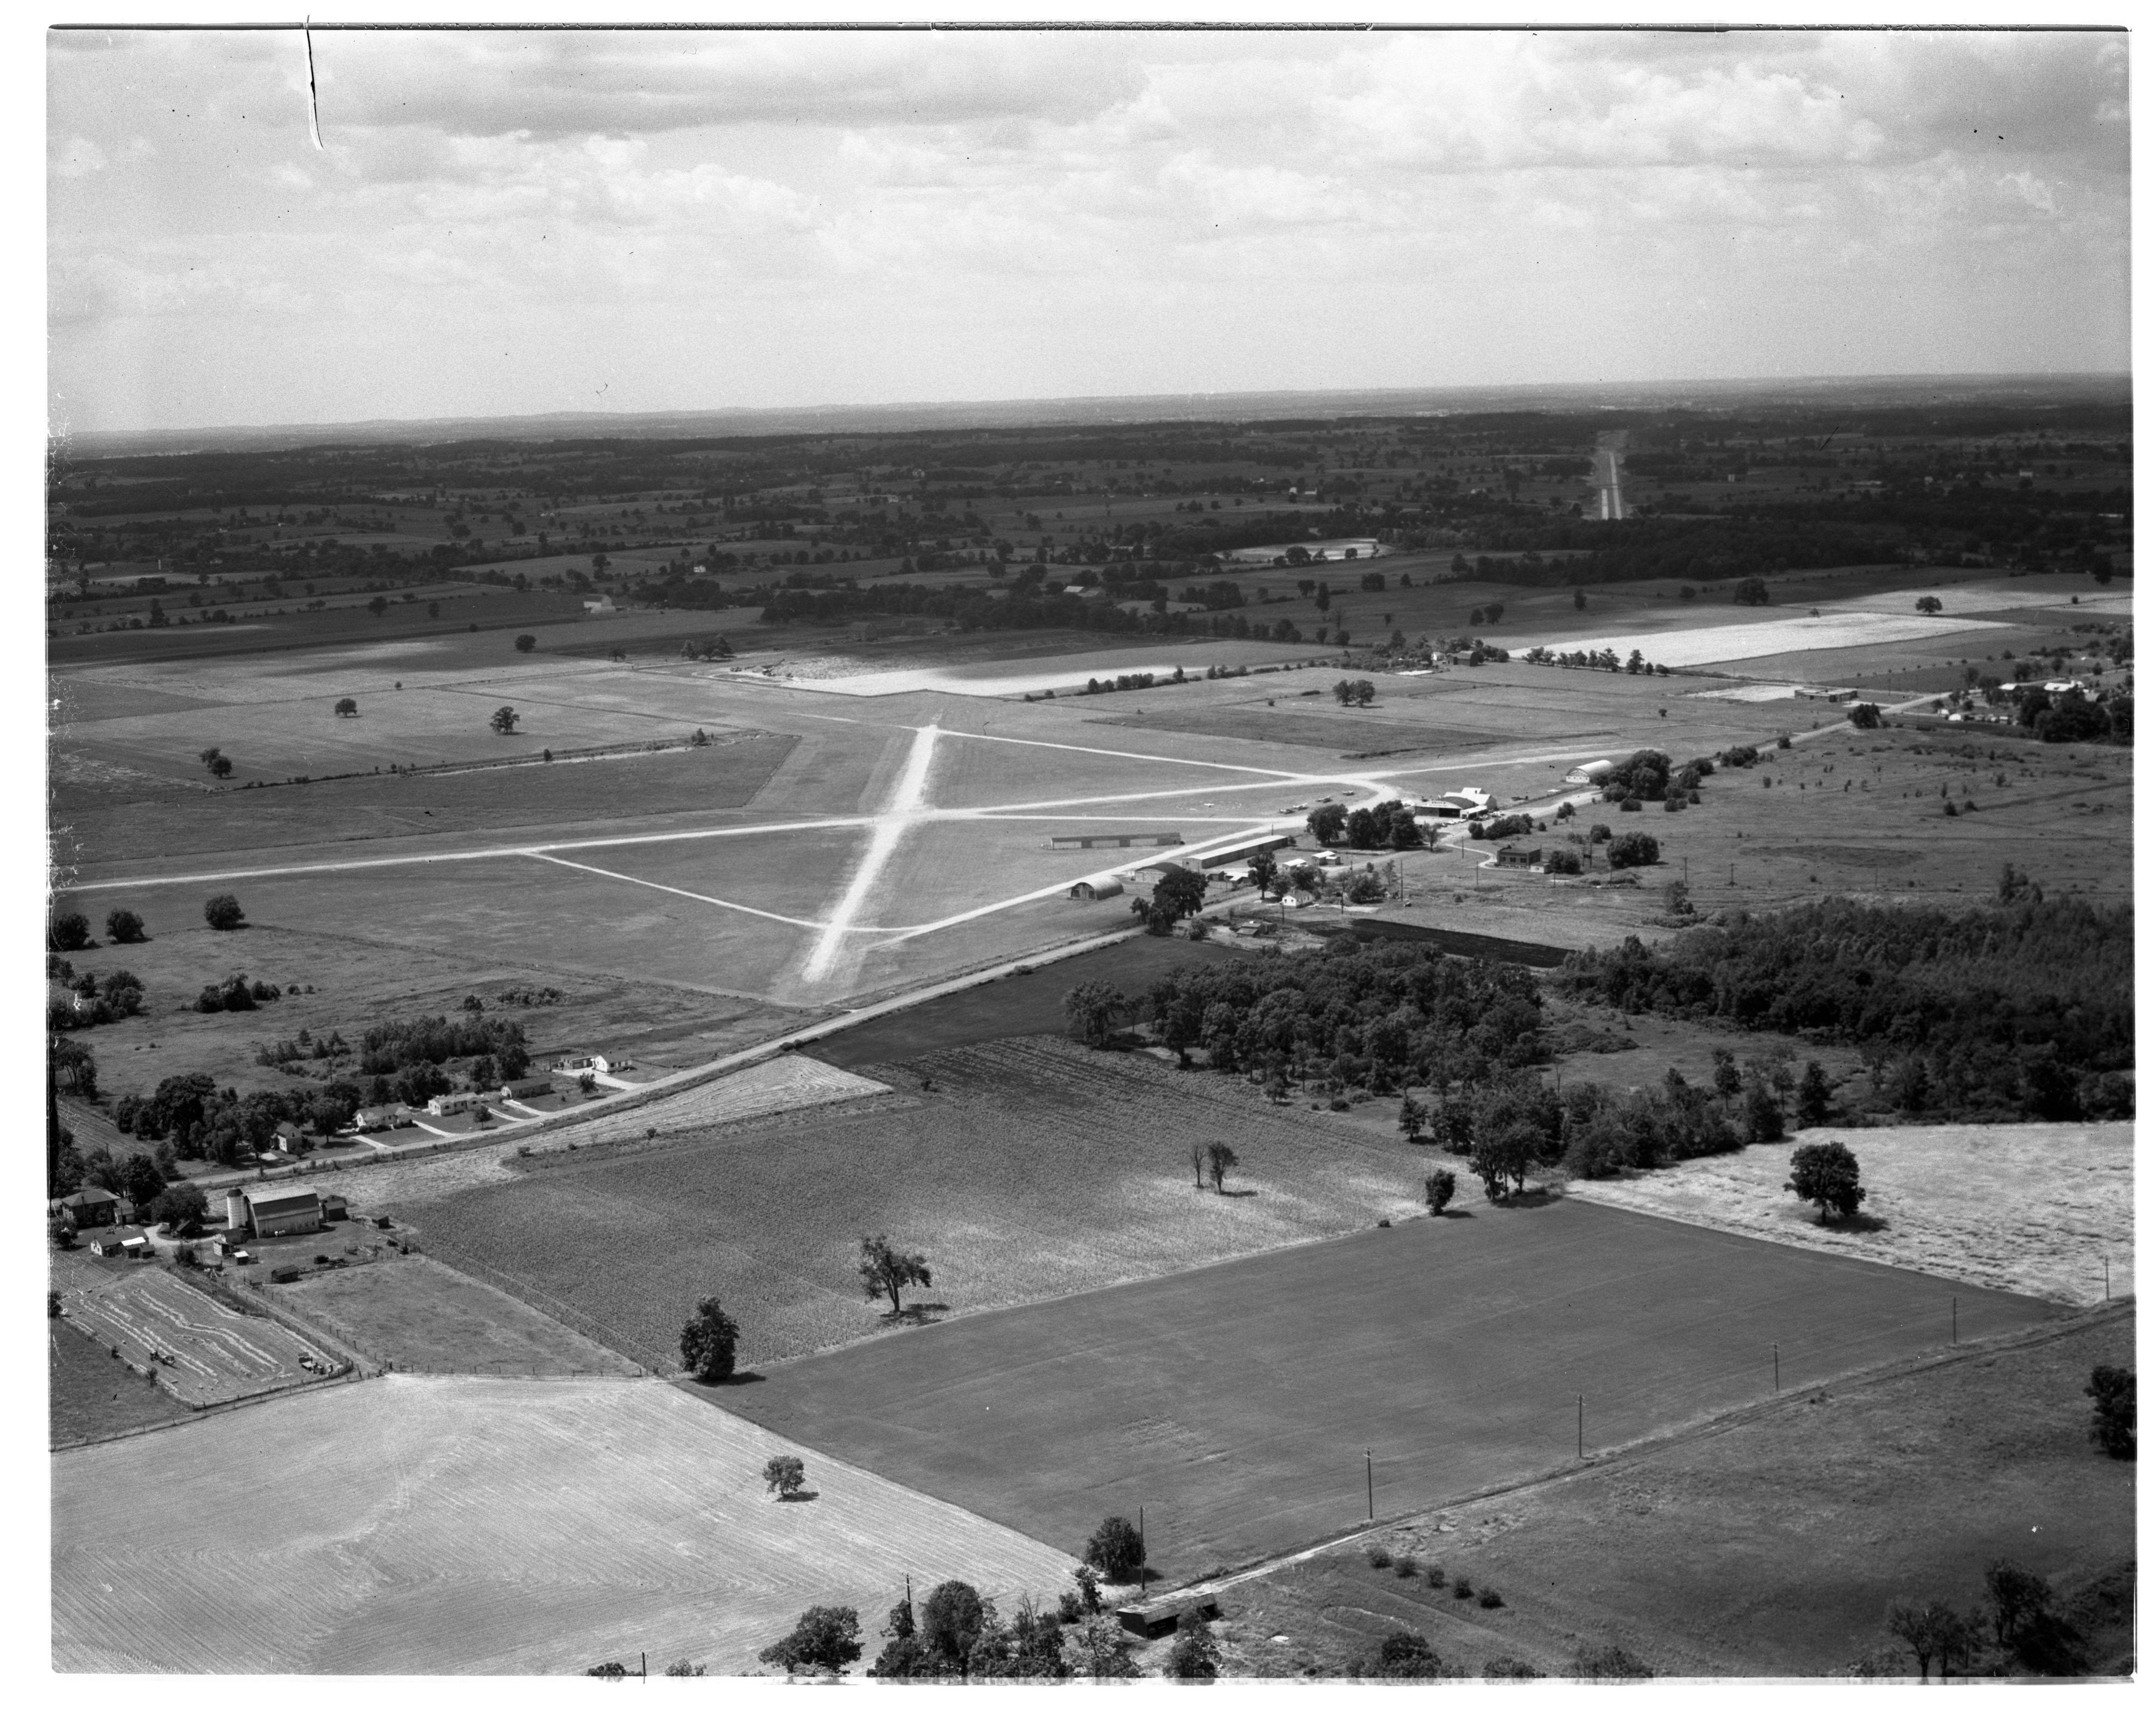 Aerial Photograph of the Ann Arbor Airport, July 1956 image